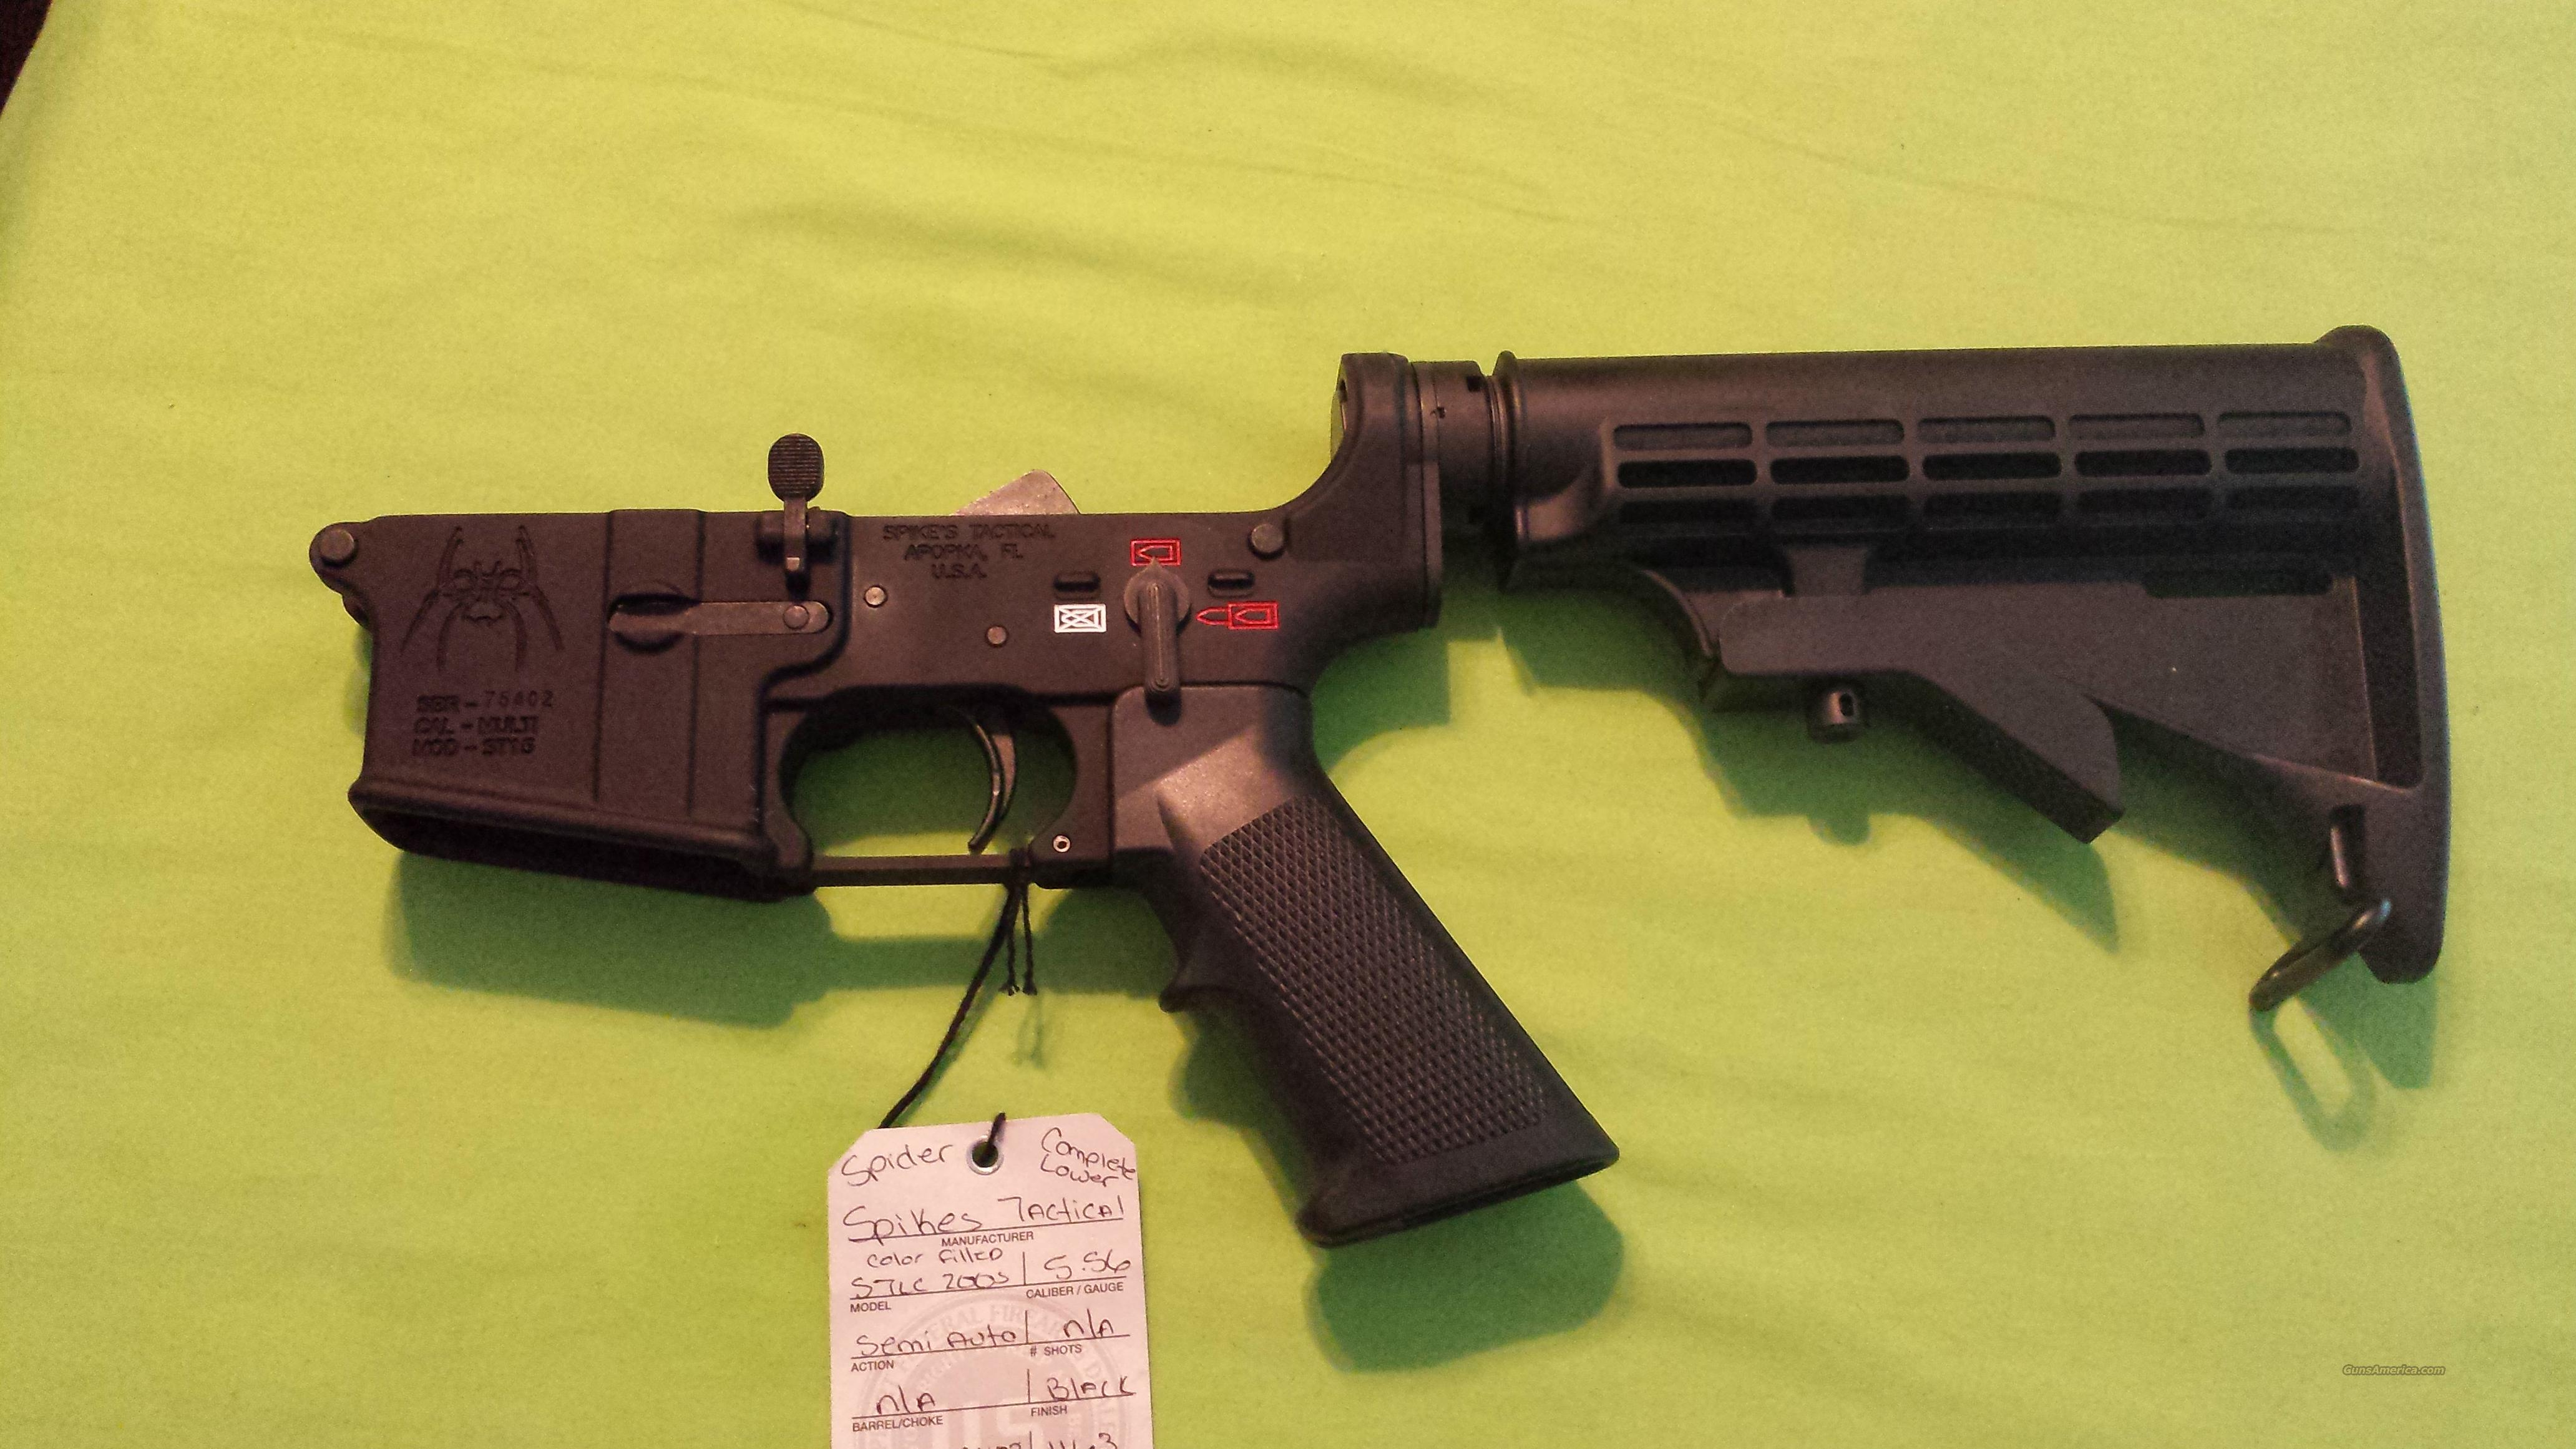 SPIKE'S COMPLETE LOWER M4 SPIDER 5.56 223 AR 15  Guns > Rifles > AR-15 Rifles - Small Manufacturers > Lower Only